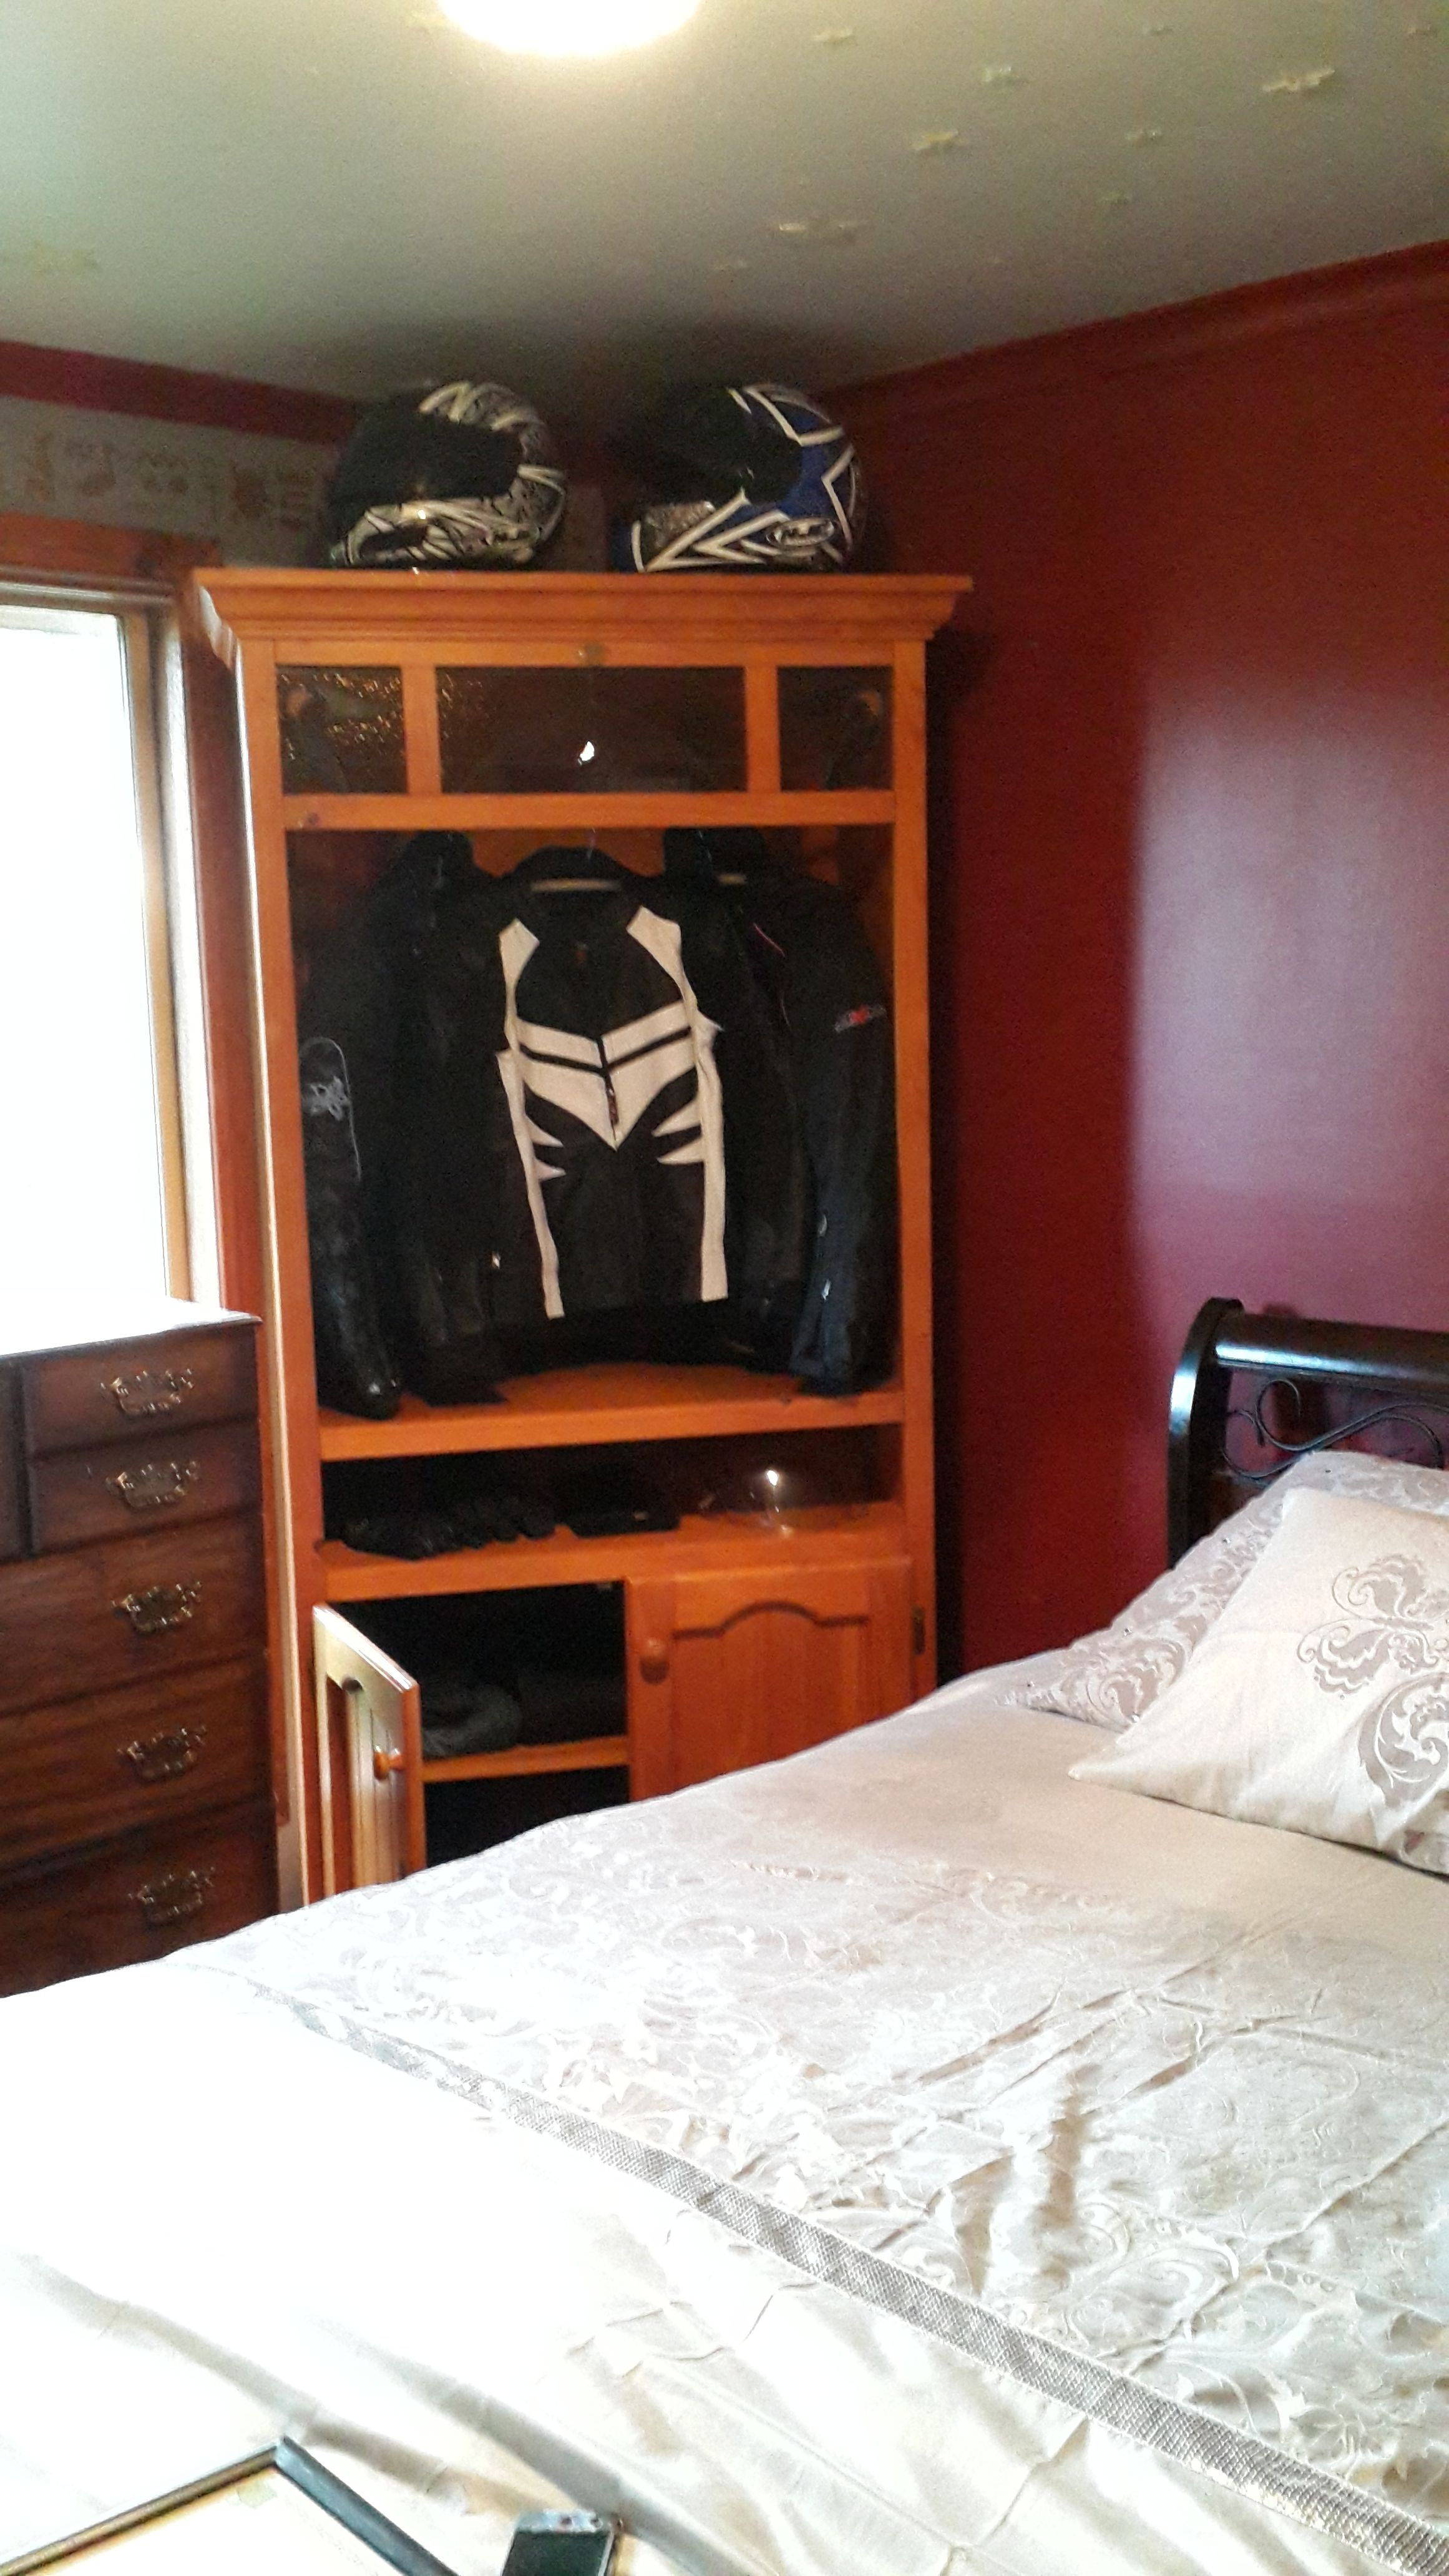 Motorcycle Gear Storage An Old Corner Tv Cabinet For Helmets